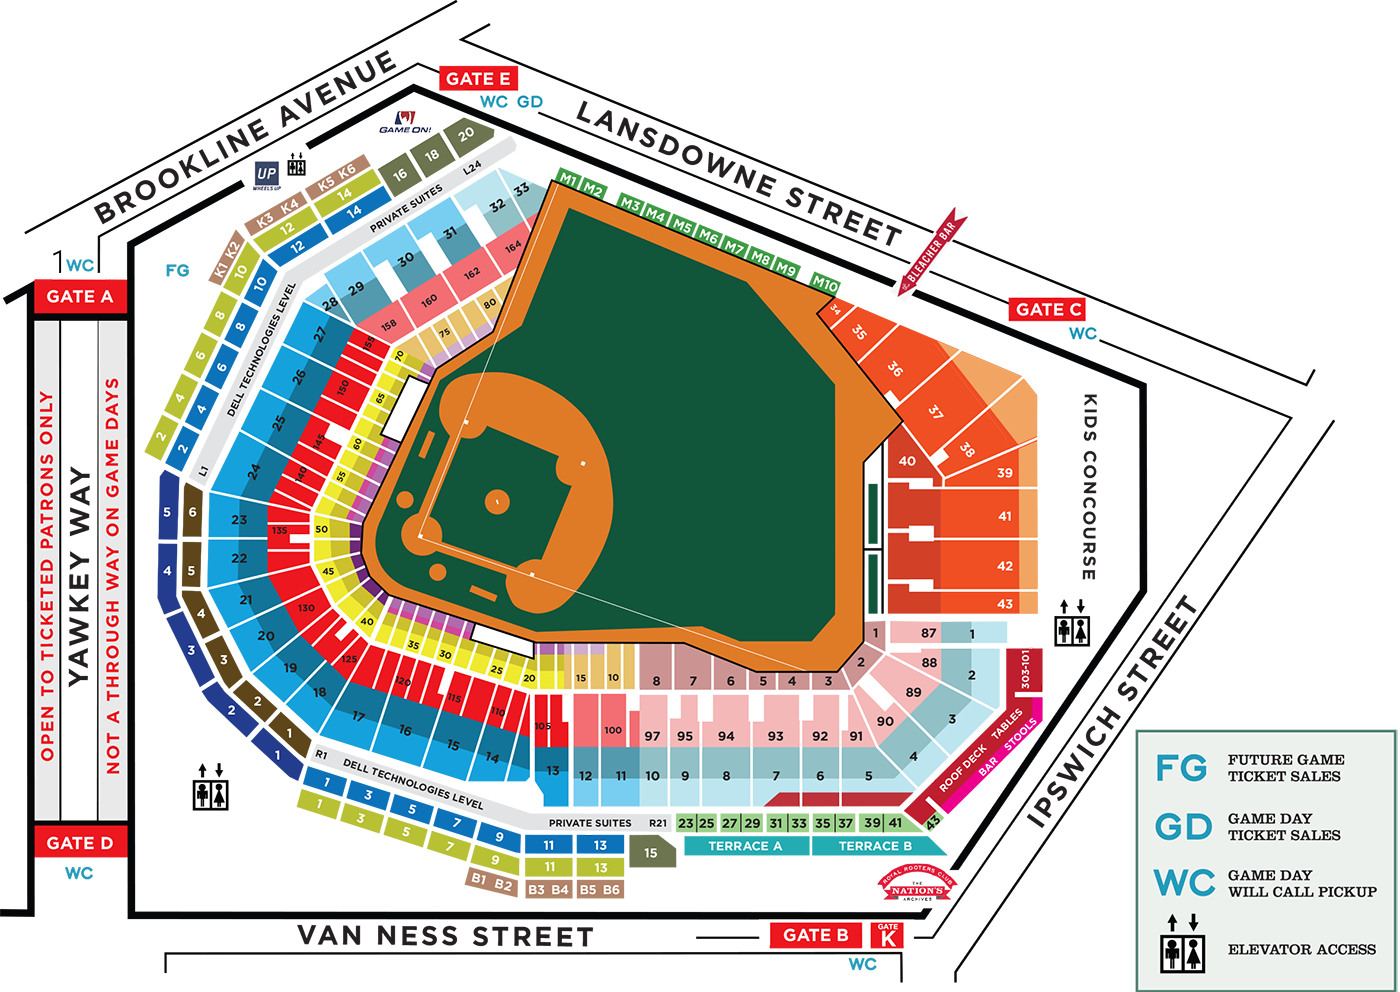 For More Information On Netting Or Screening Coverage And Seating Options Please Contact The Boston Red Sox Ticket Office At 877 RedSox9